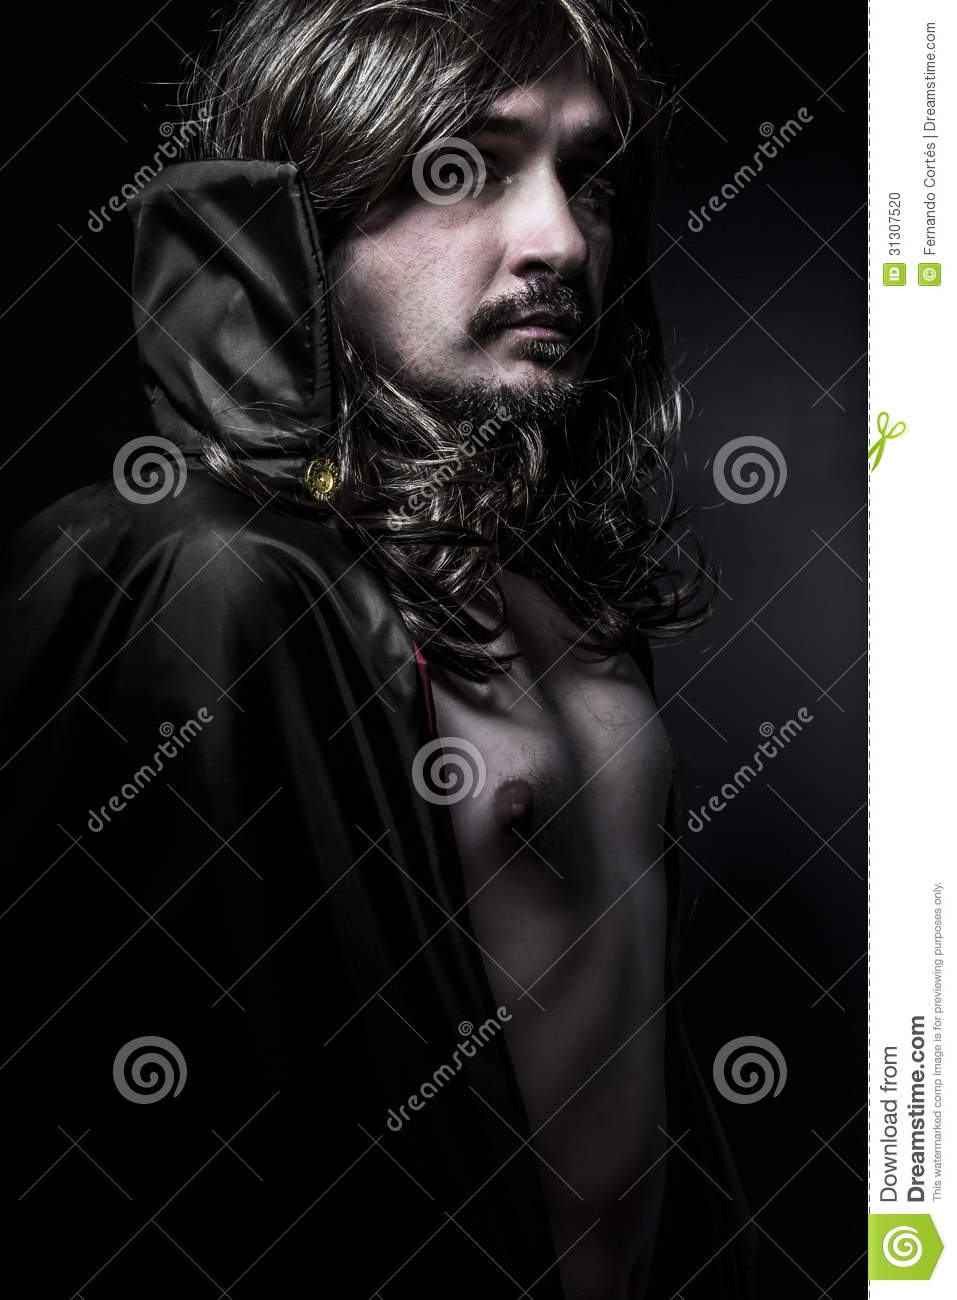 Vampire With Black Coat And Long Hair Stock Photo Image